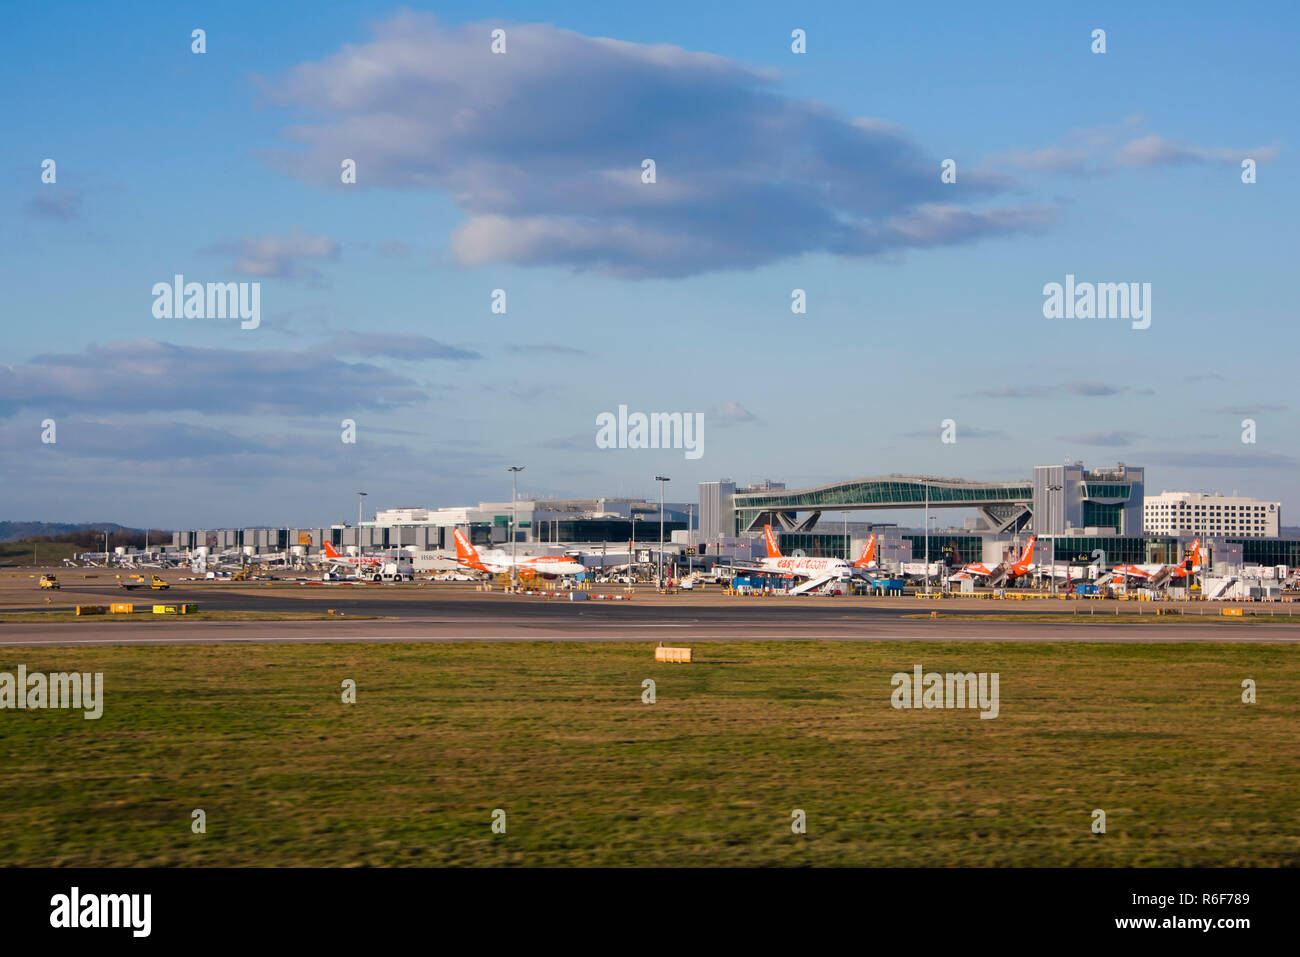 Horizontal view of Gatwick airport. - Stock Image